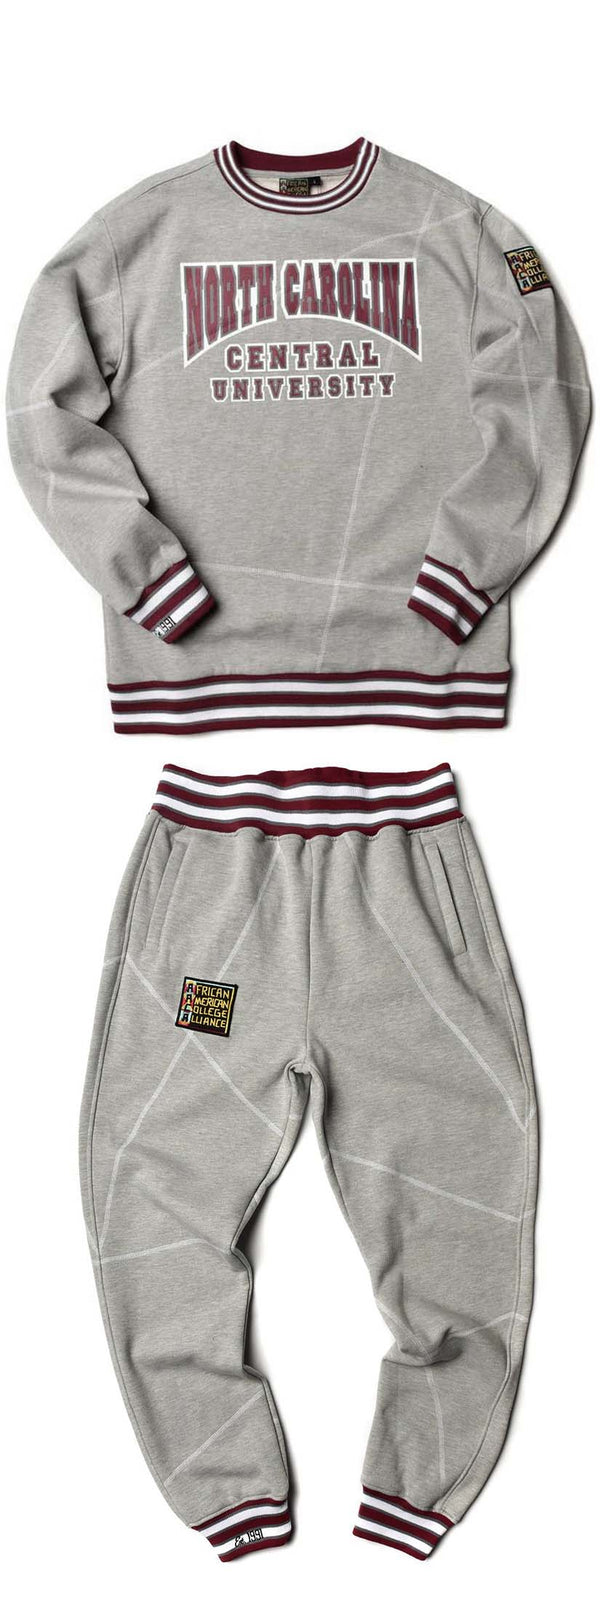 "North Carolina Central University Original '92 ""Frankenstein"" Crewneck Sweat Suit MDH Grey/White"